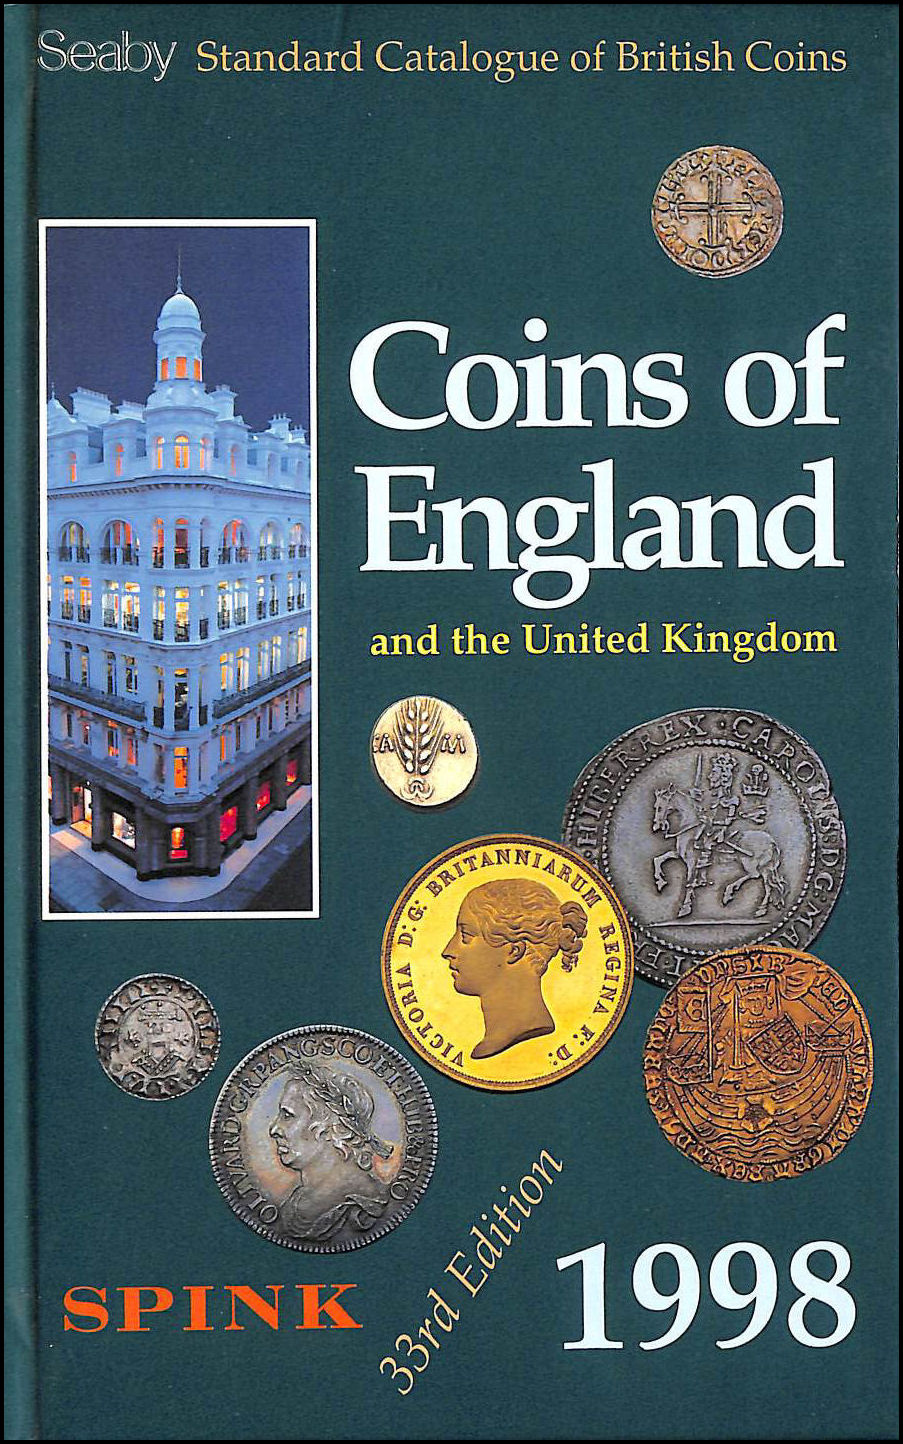 Image for Seaby Standard Catalogue of British Coins 1998: Coins of England and the United Kingdom